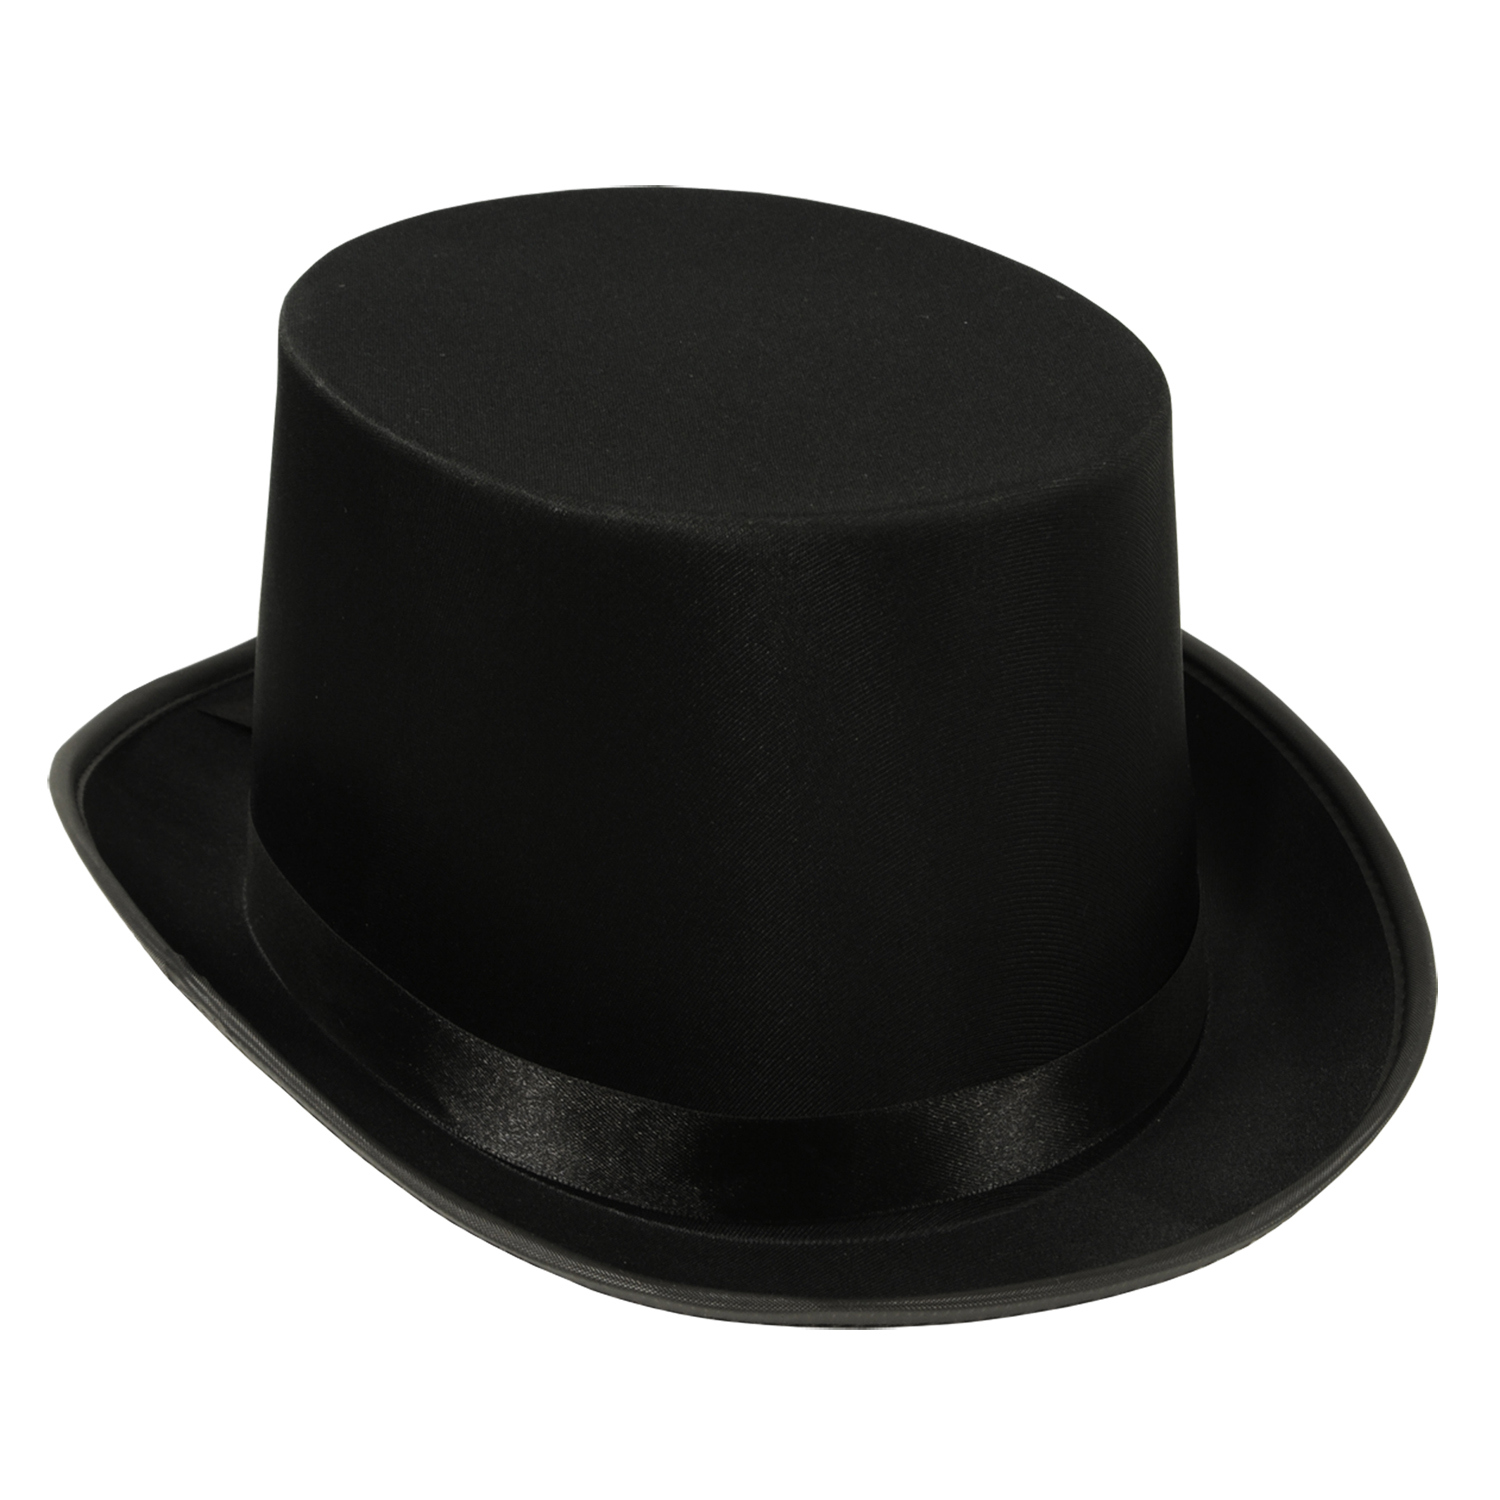 Black top hat that is made of a satin material.